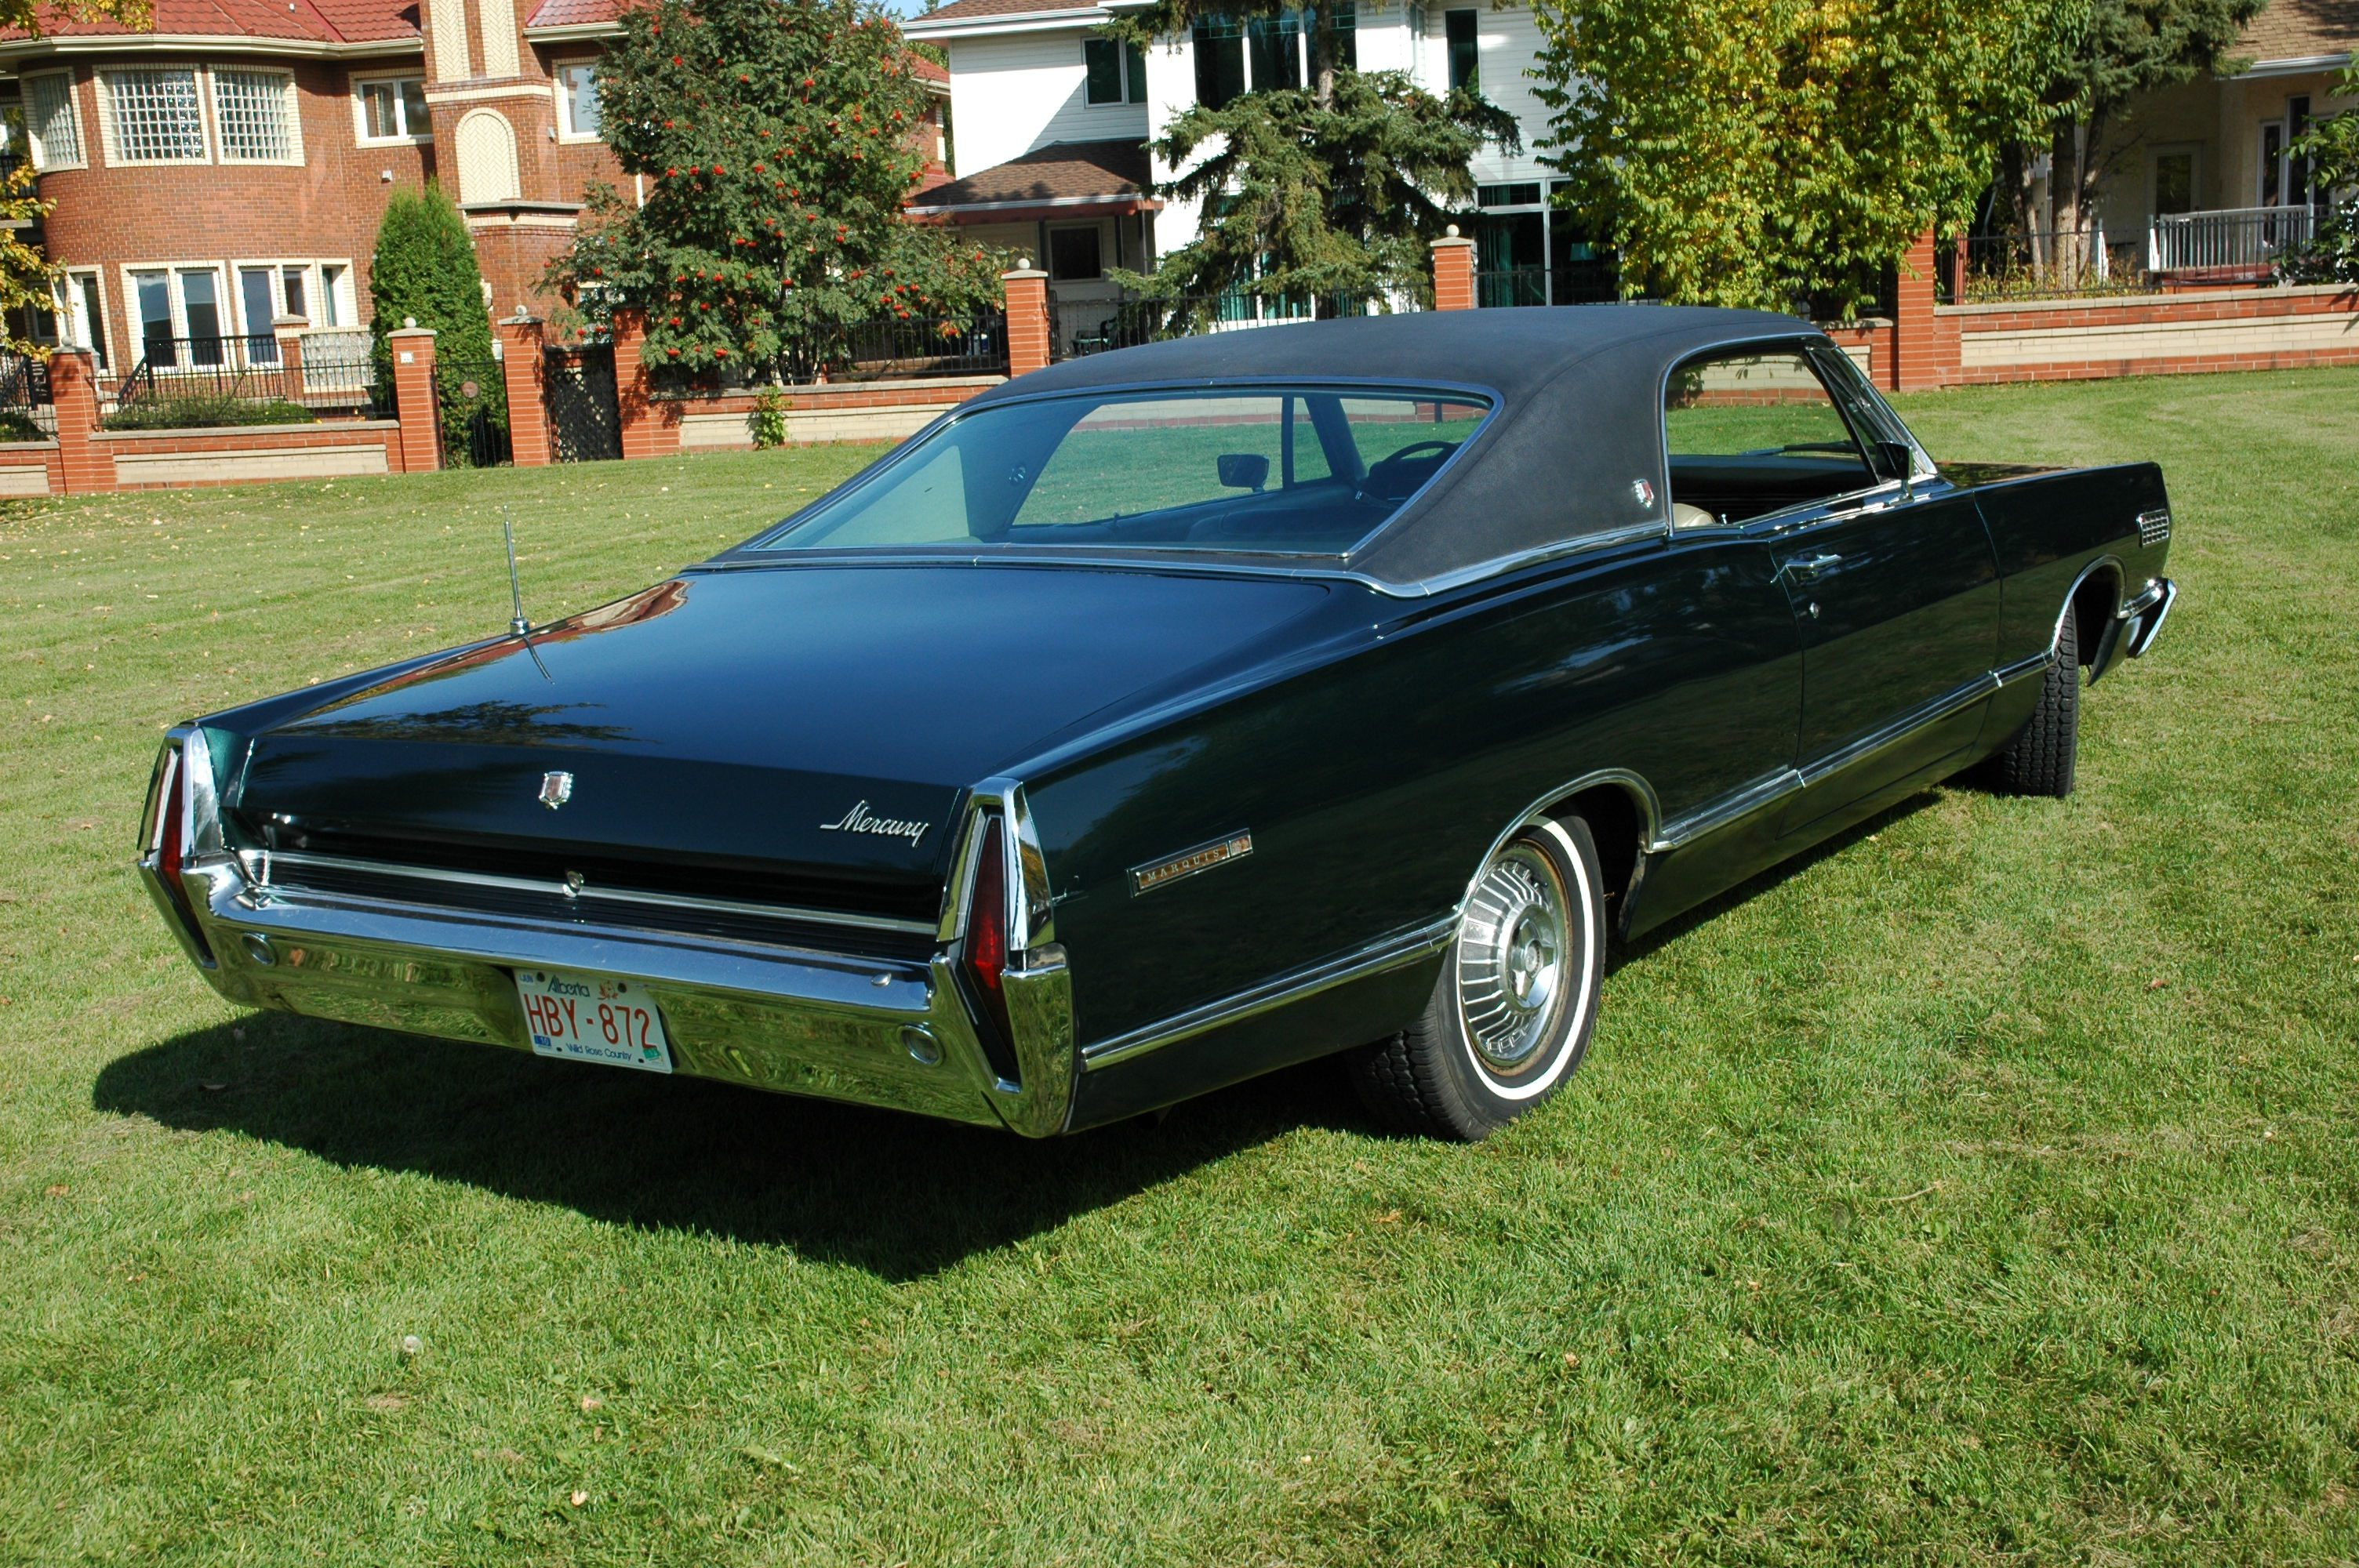 1967 Mercury Montclair #18